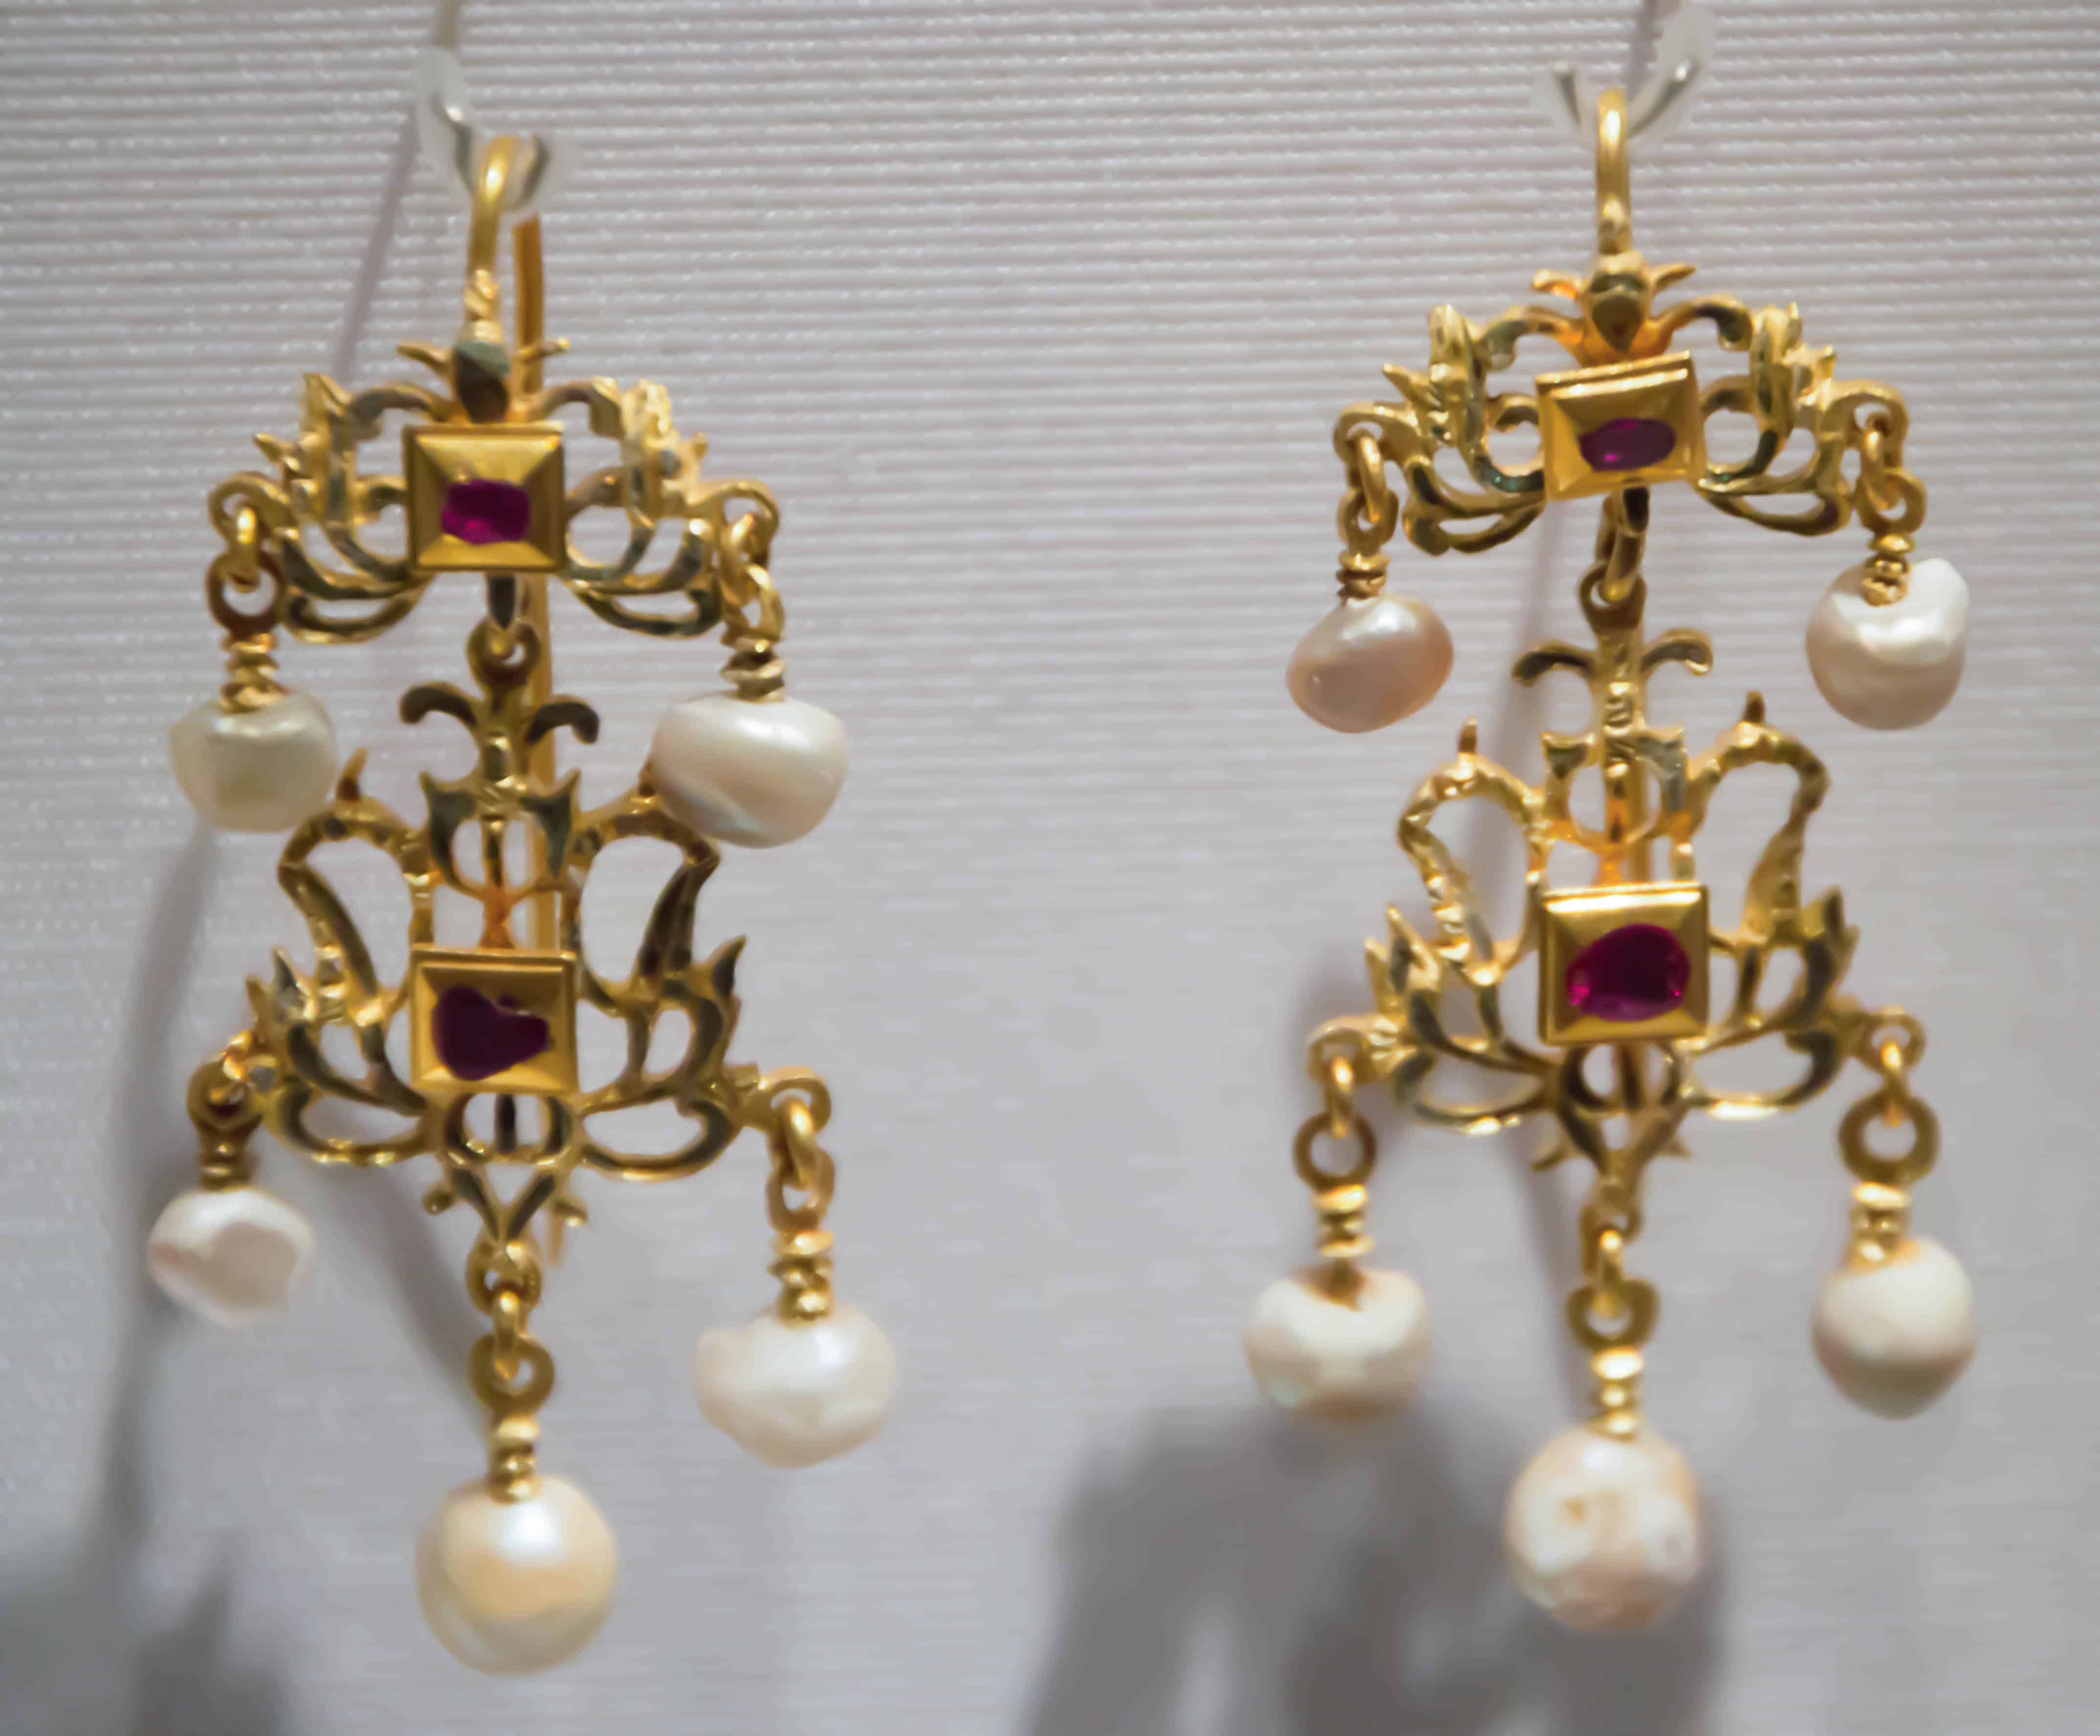 Renaissance Earrings Rubies.jpg